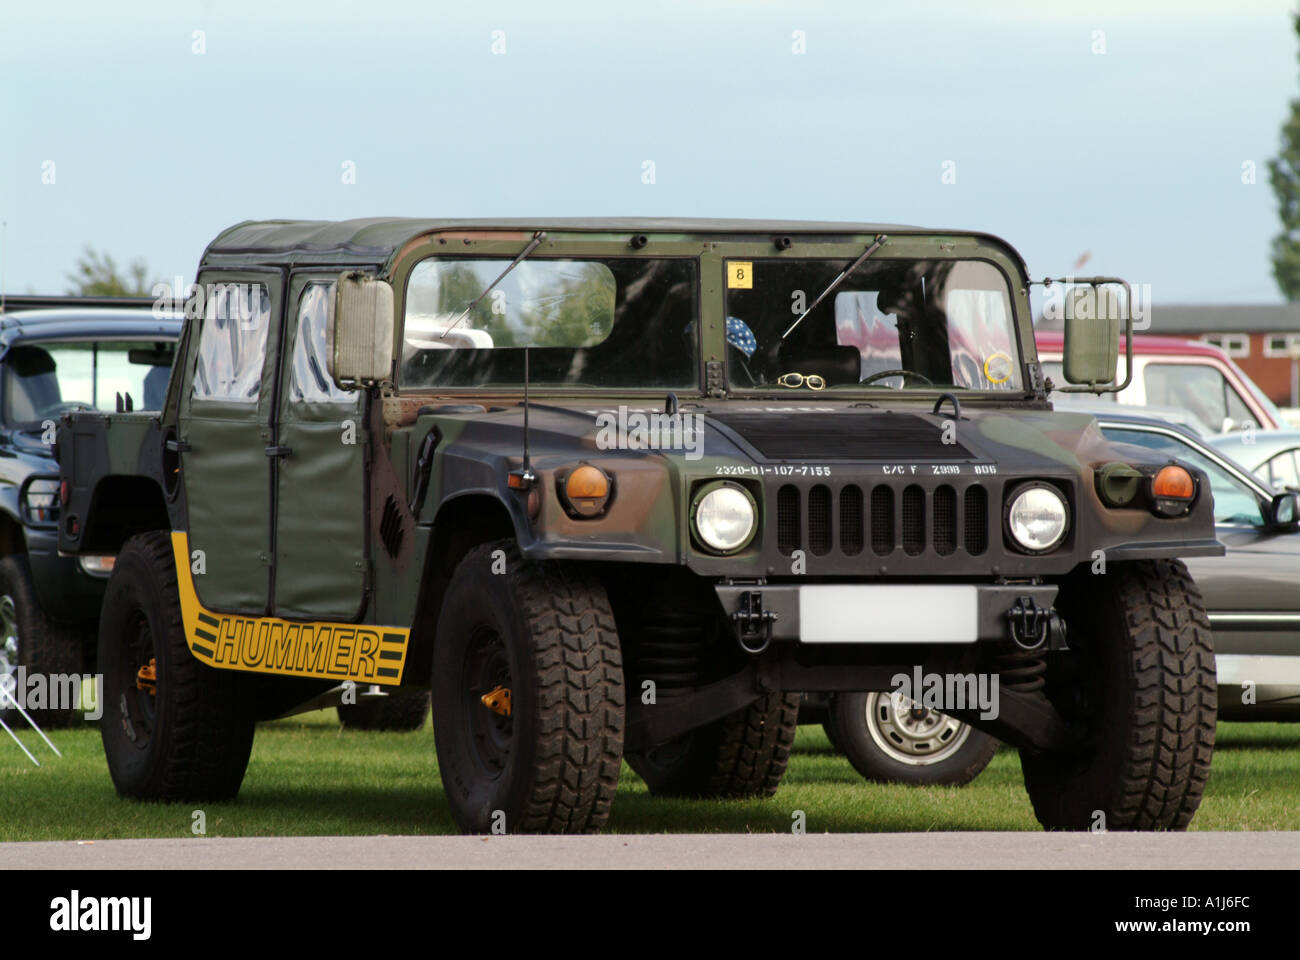 hummer suv humvee american miltary vechical camoflage camo world war stock photo 1894139 alamy. Black Bedroom Furniture Sets. Home Design Ideas